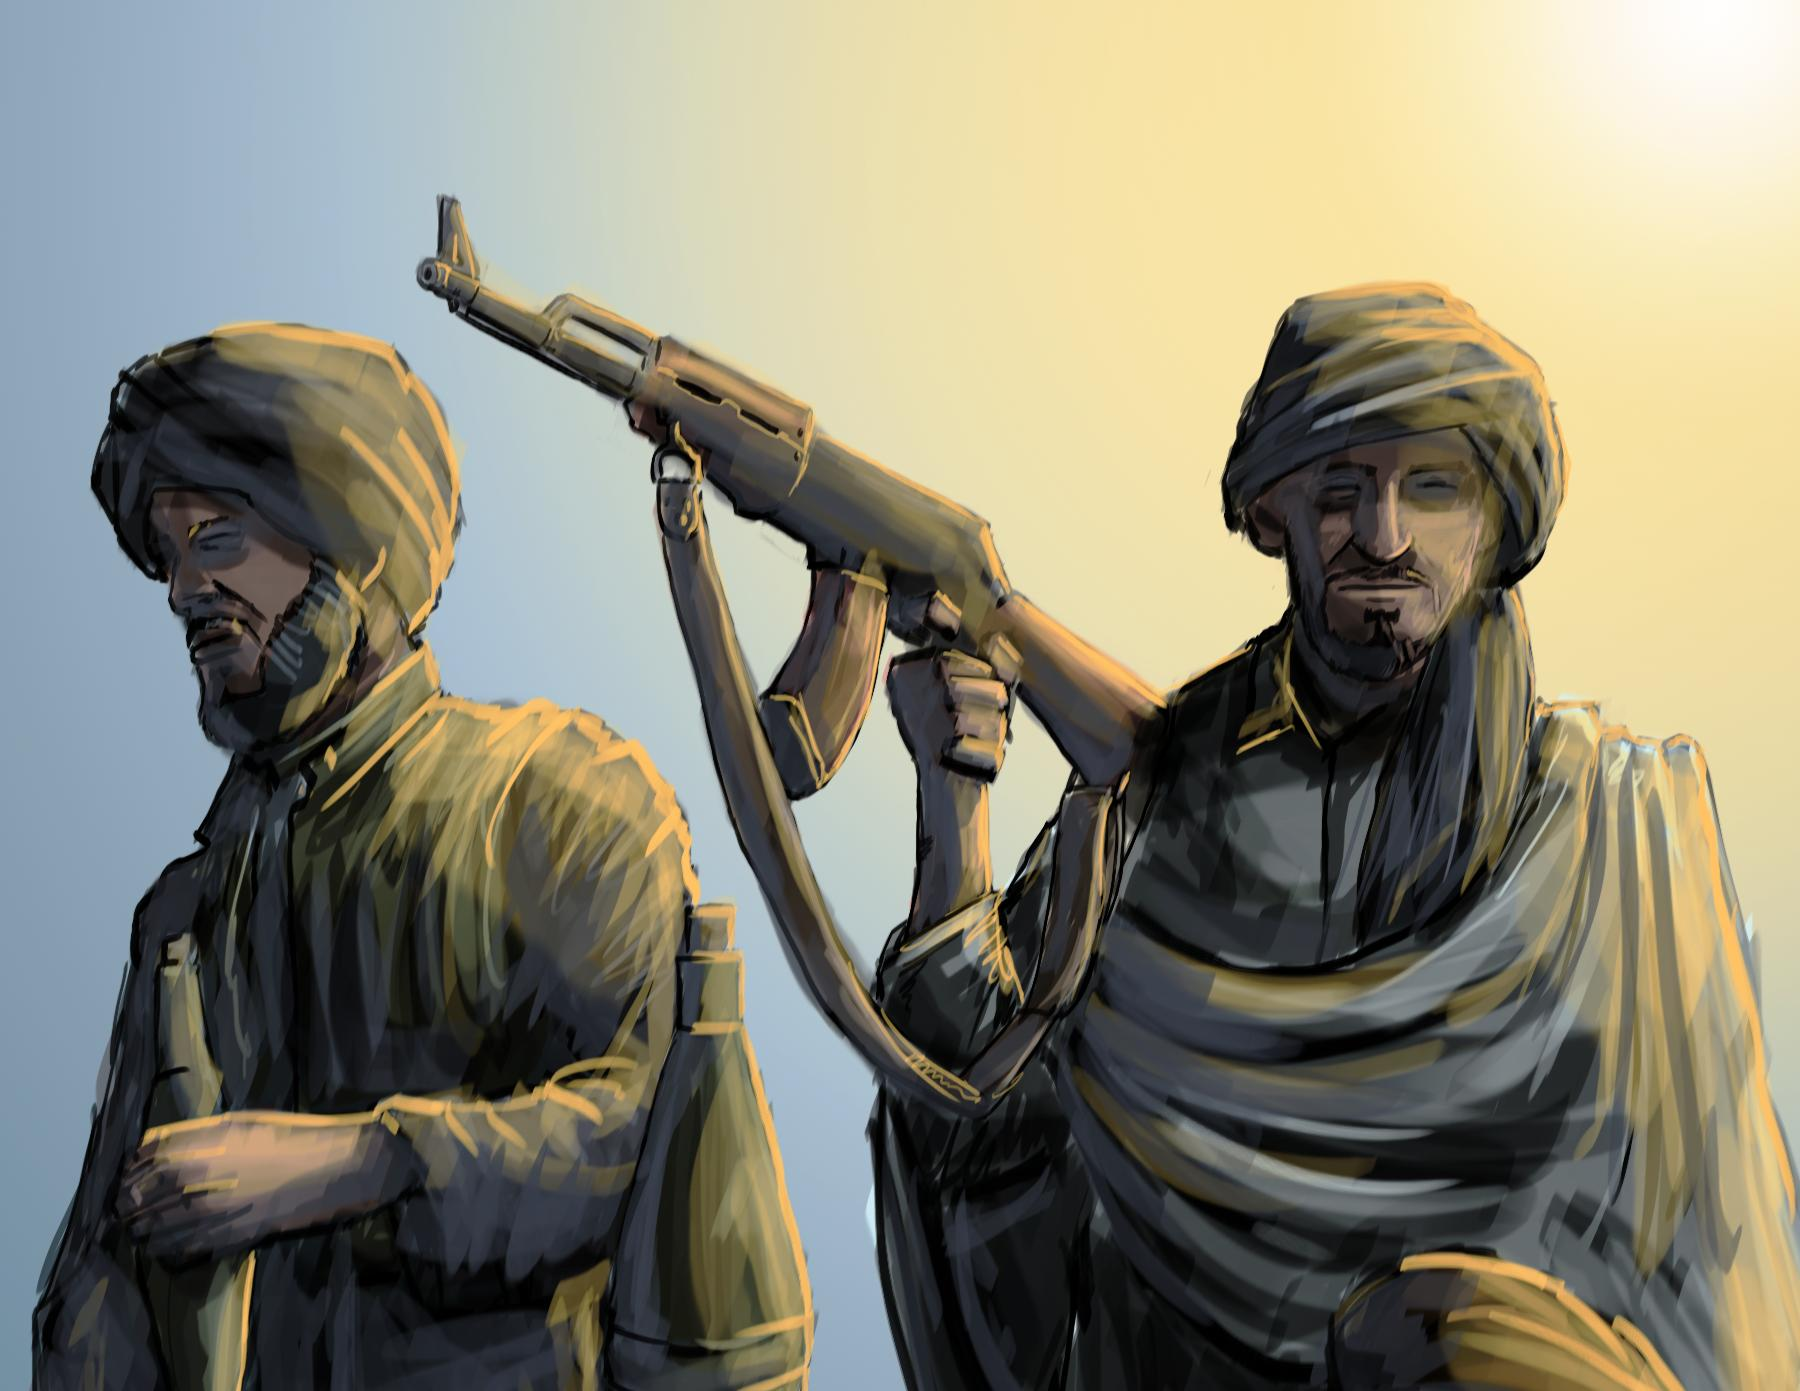 Inspector Hakim Khan, the investigating officer, said the suspects' affiliation with a banned or a militant outfit could not be established during initial investigations.  ILLUSTRATION: JAMAL KHURSHID